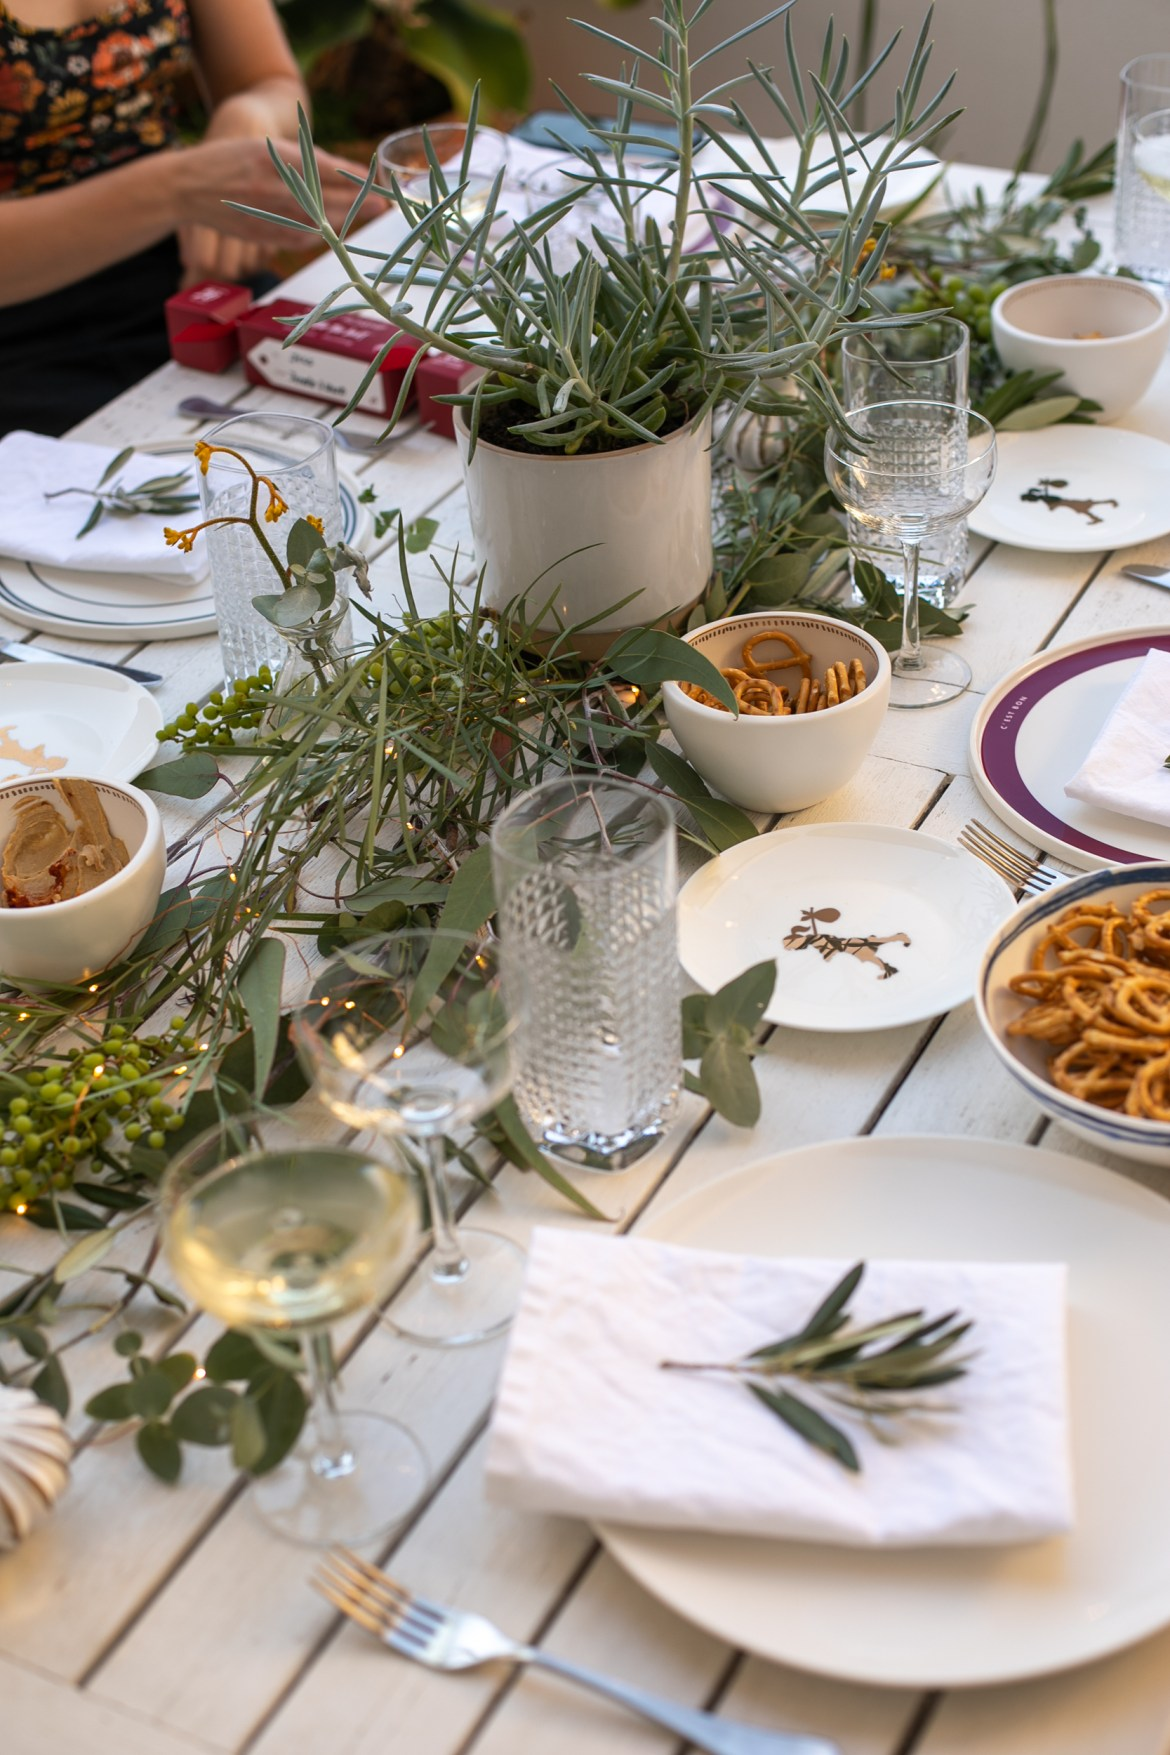 dining table set up at a dinner party